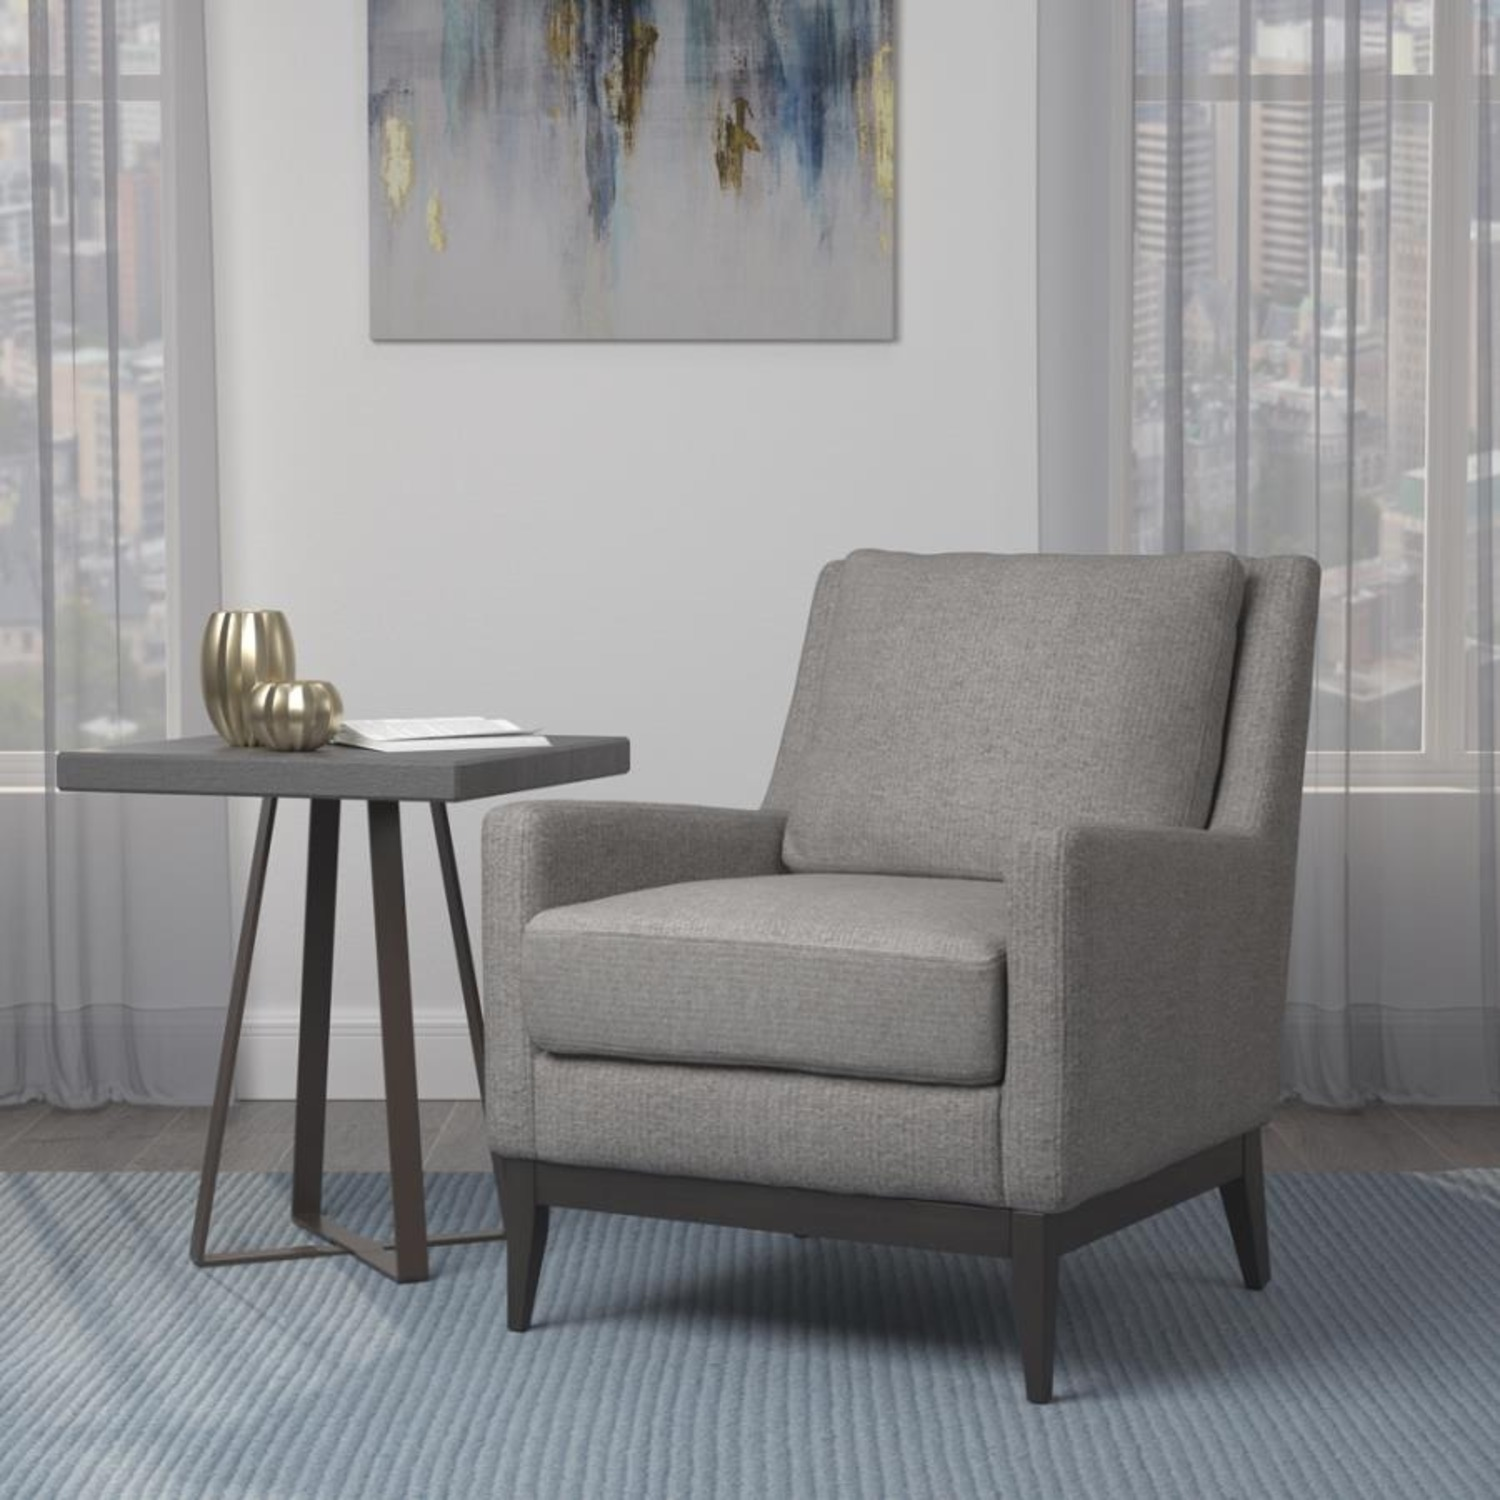 Accent Chair In Linen-Like Warm Grey Fabric Finish - image-2